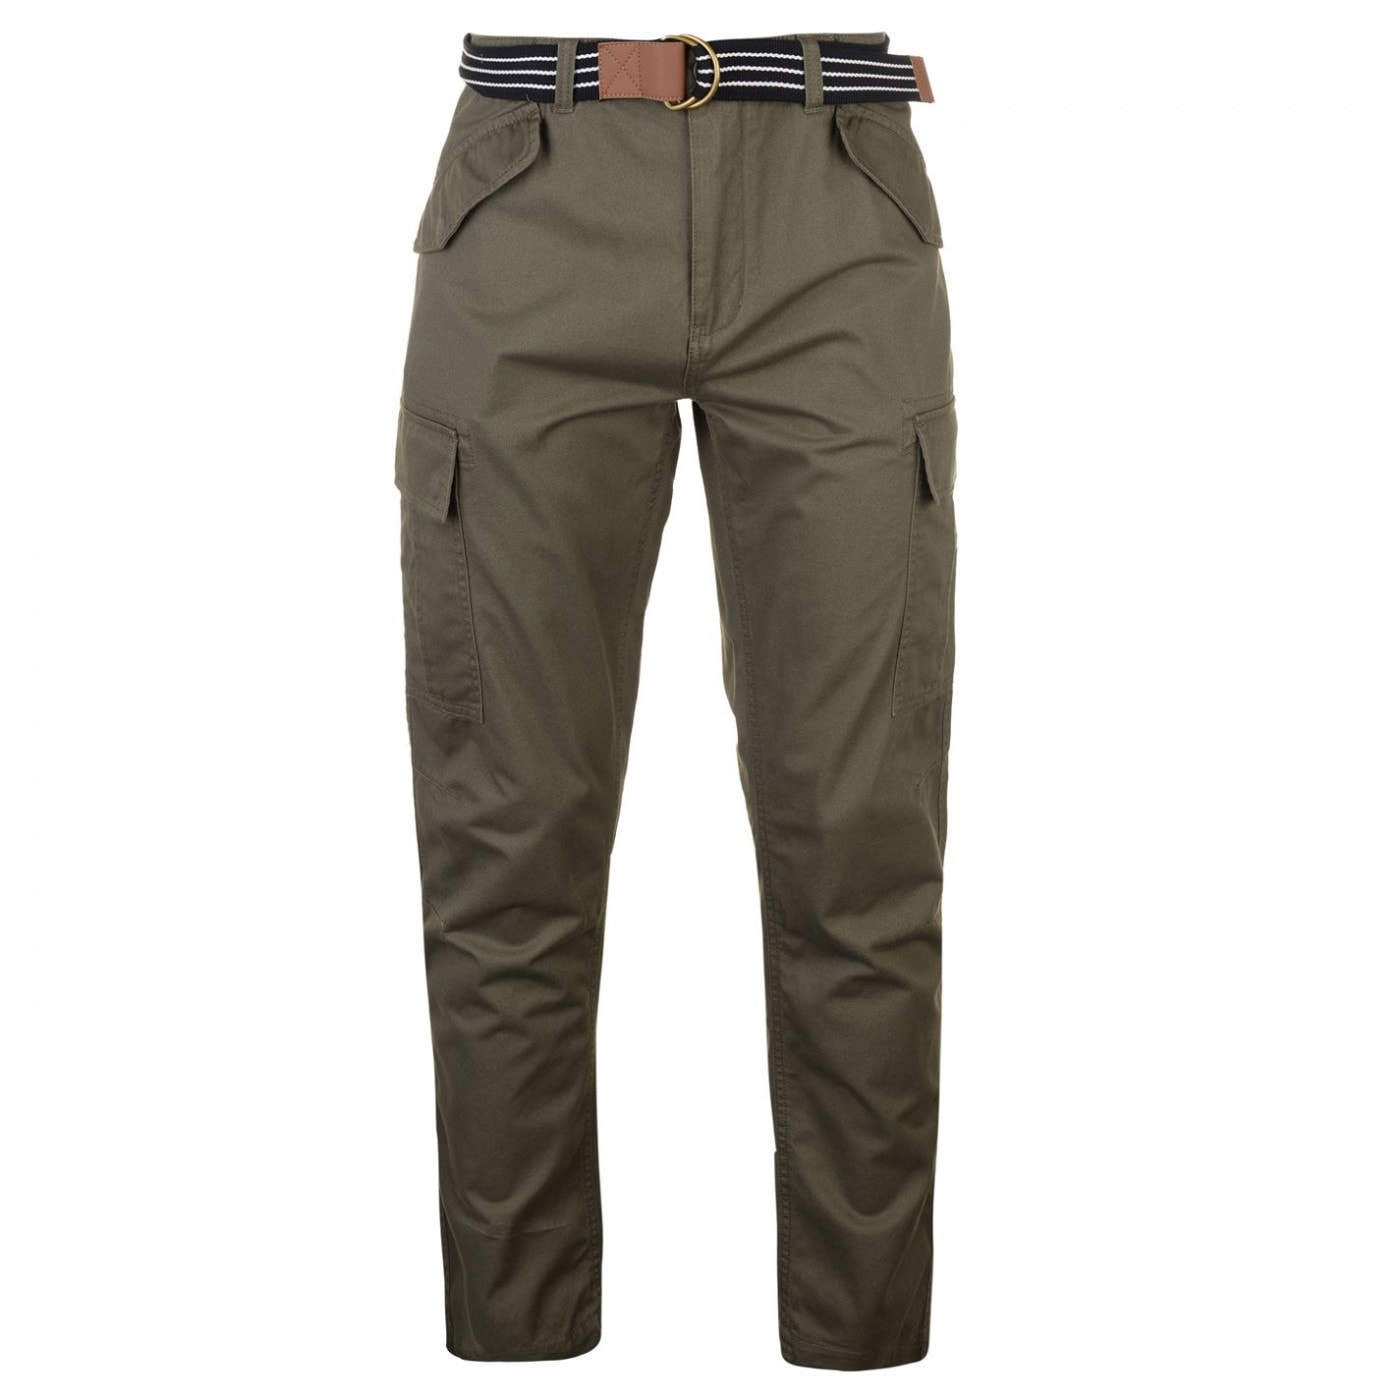 4611e0bb76b4 Pierre Cardin Belted Cargo Trousers Mens - FACTCOOL